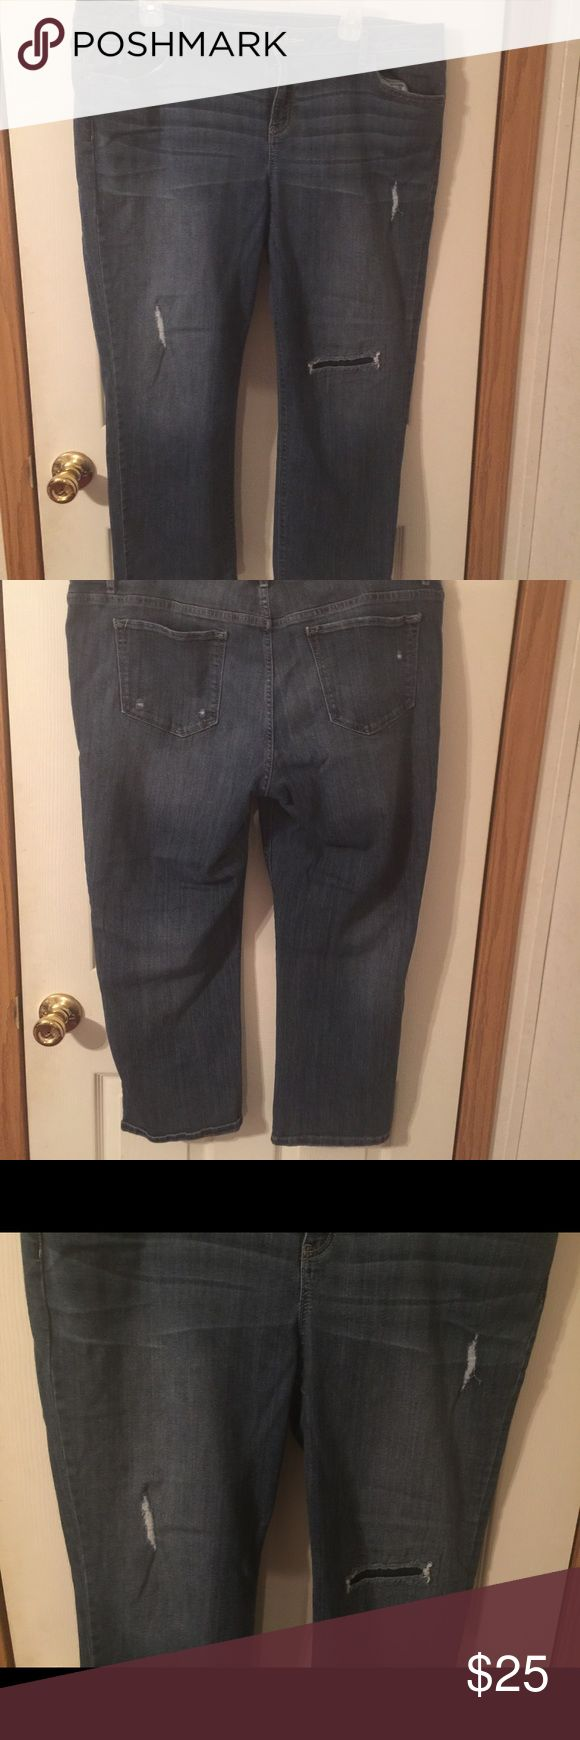 Simply Vera Wang boyfriend jeans size16. Simply Vera Wang boyfriend jeans size16. This is a great pair of factory distressed boyfriend jeans. They are in great shape. Please view all pictures. Simply Vera Vera Wang Jeans Ankle & Cropped